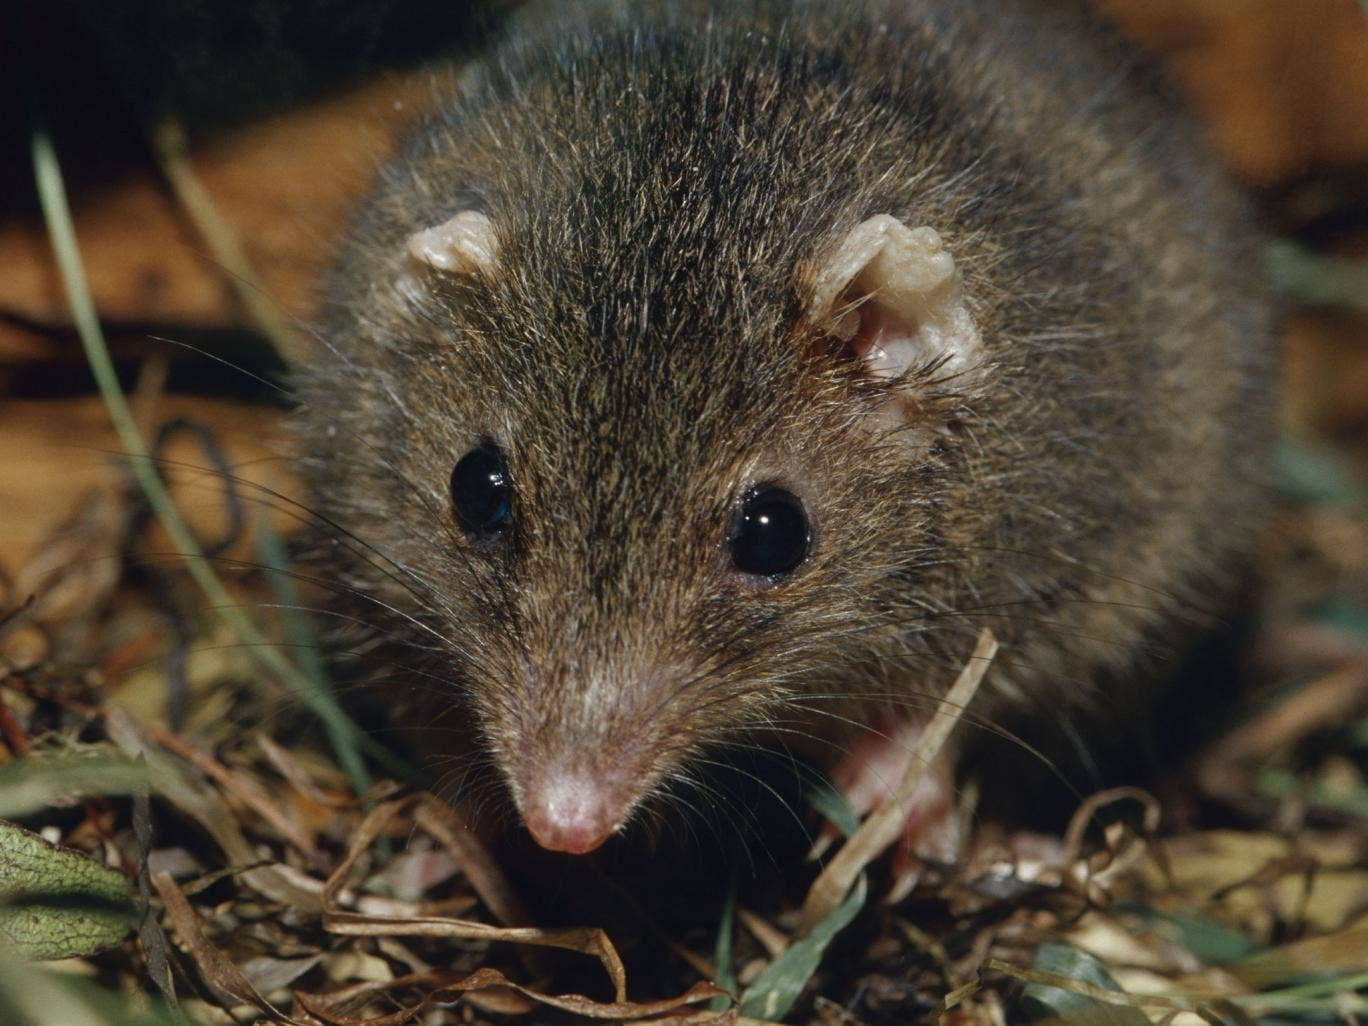 Portrait of a Dusky antechinus, a relation of the black-tailed antechinus discovered by Australian scientists.